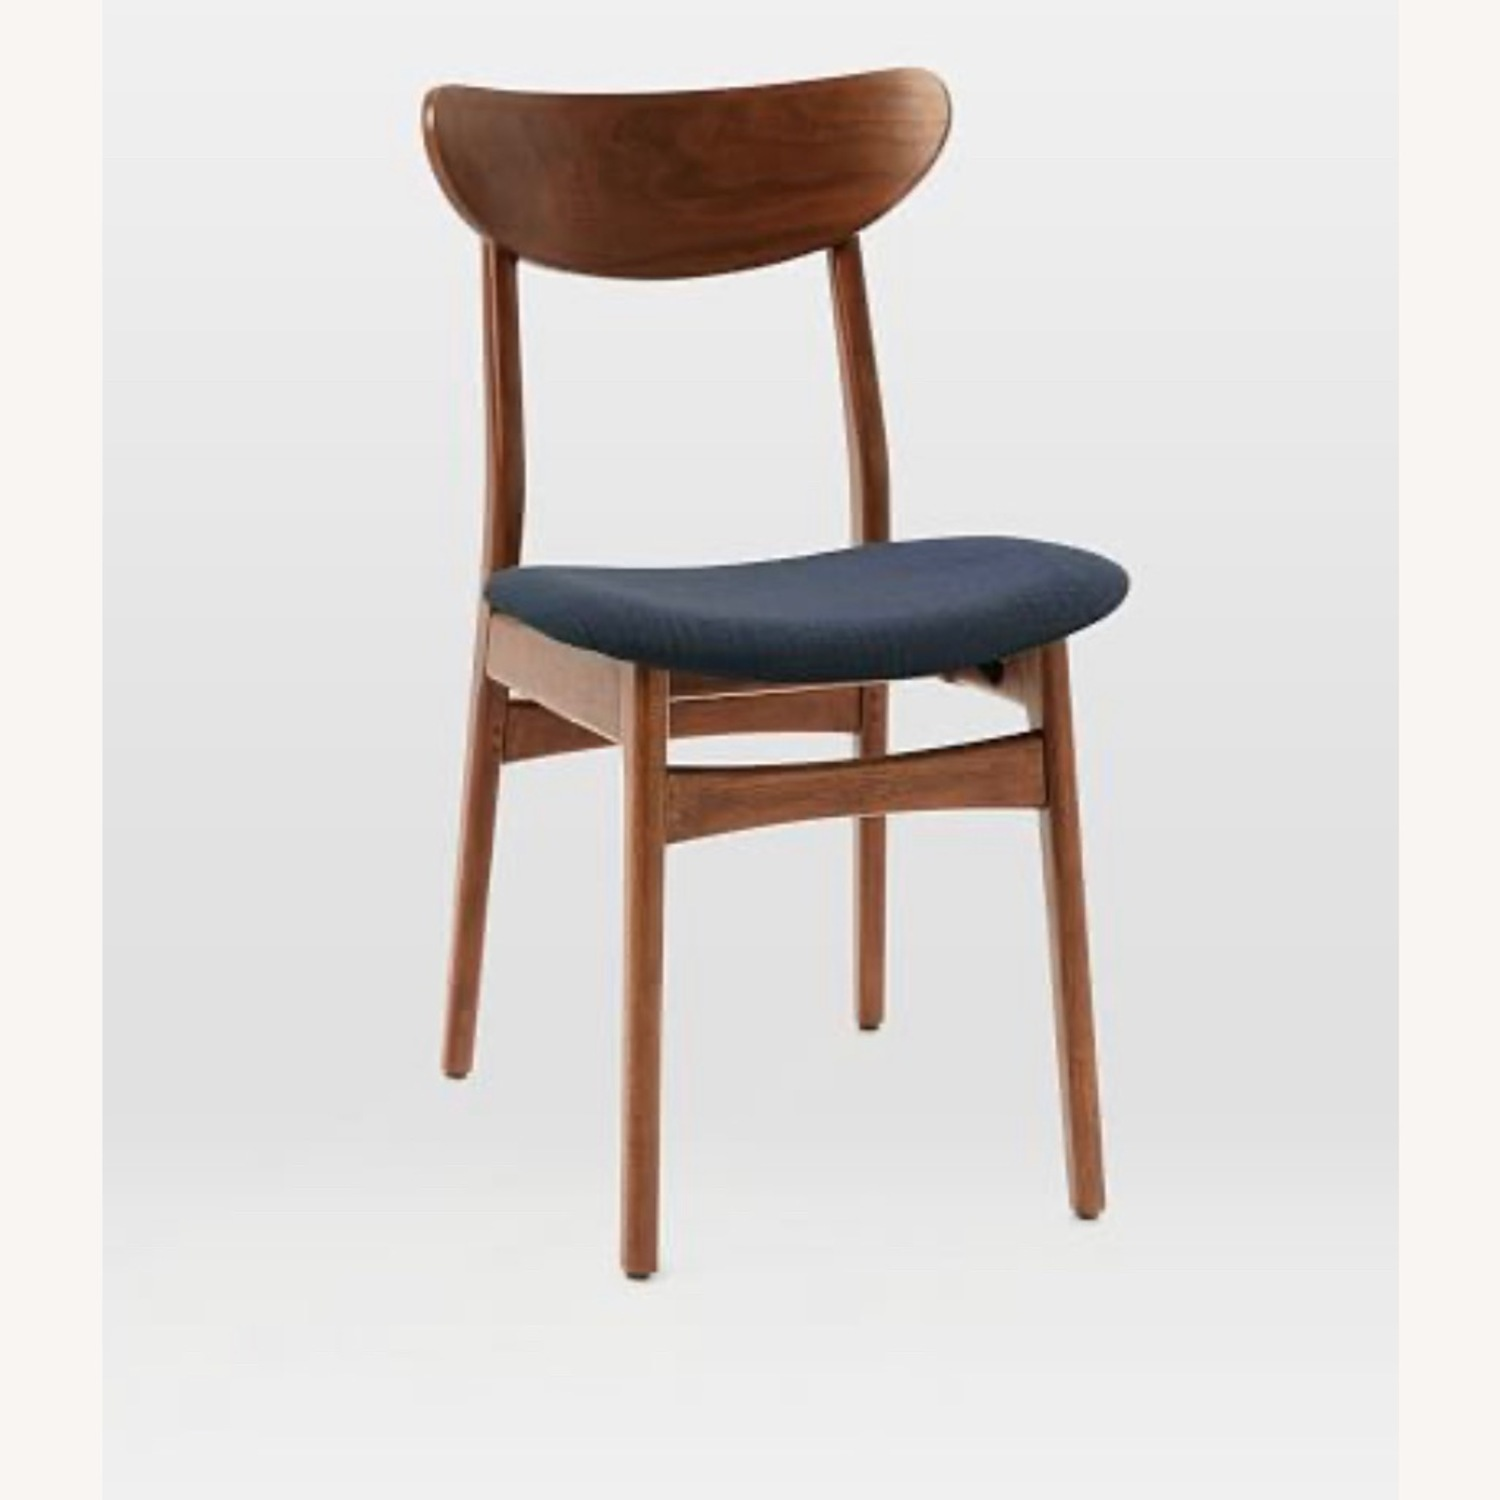 West Elm Classic Cafe Chairs Set of 2 - image-2